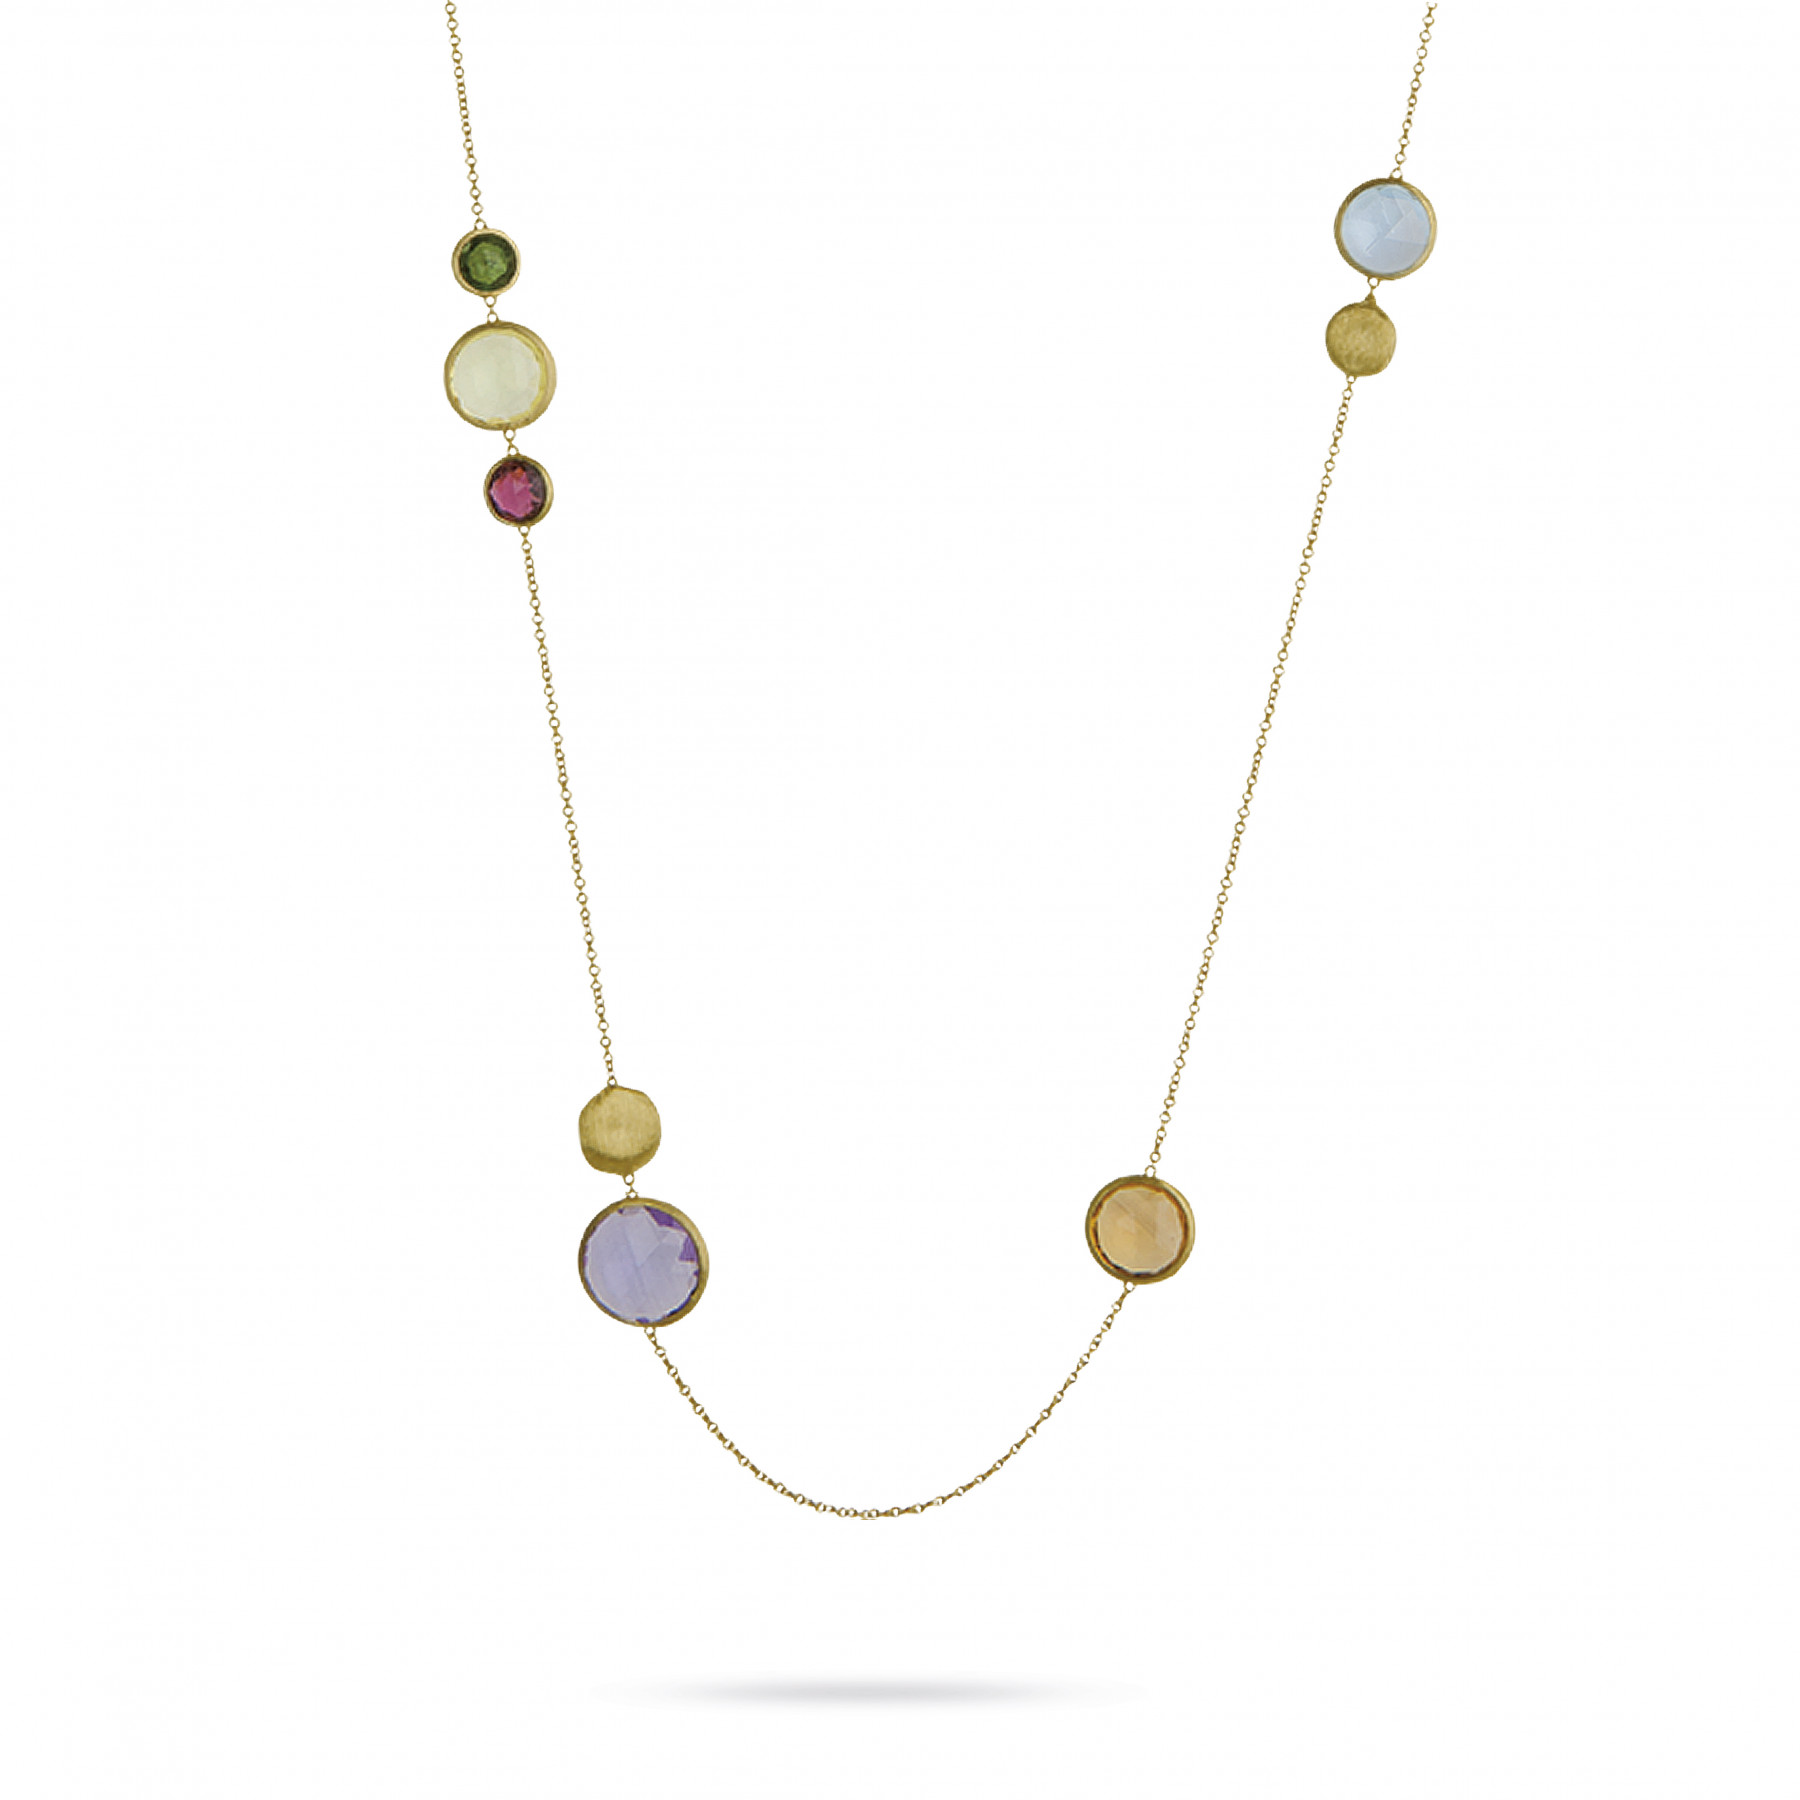 Marco Bicego Jaipur 18kt Yellow Gold Necklace with Mixed Stones 36""